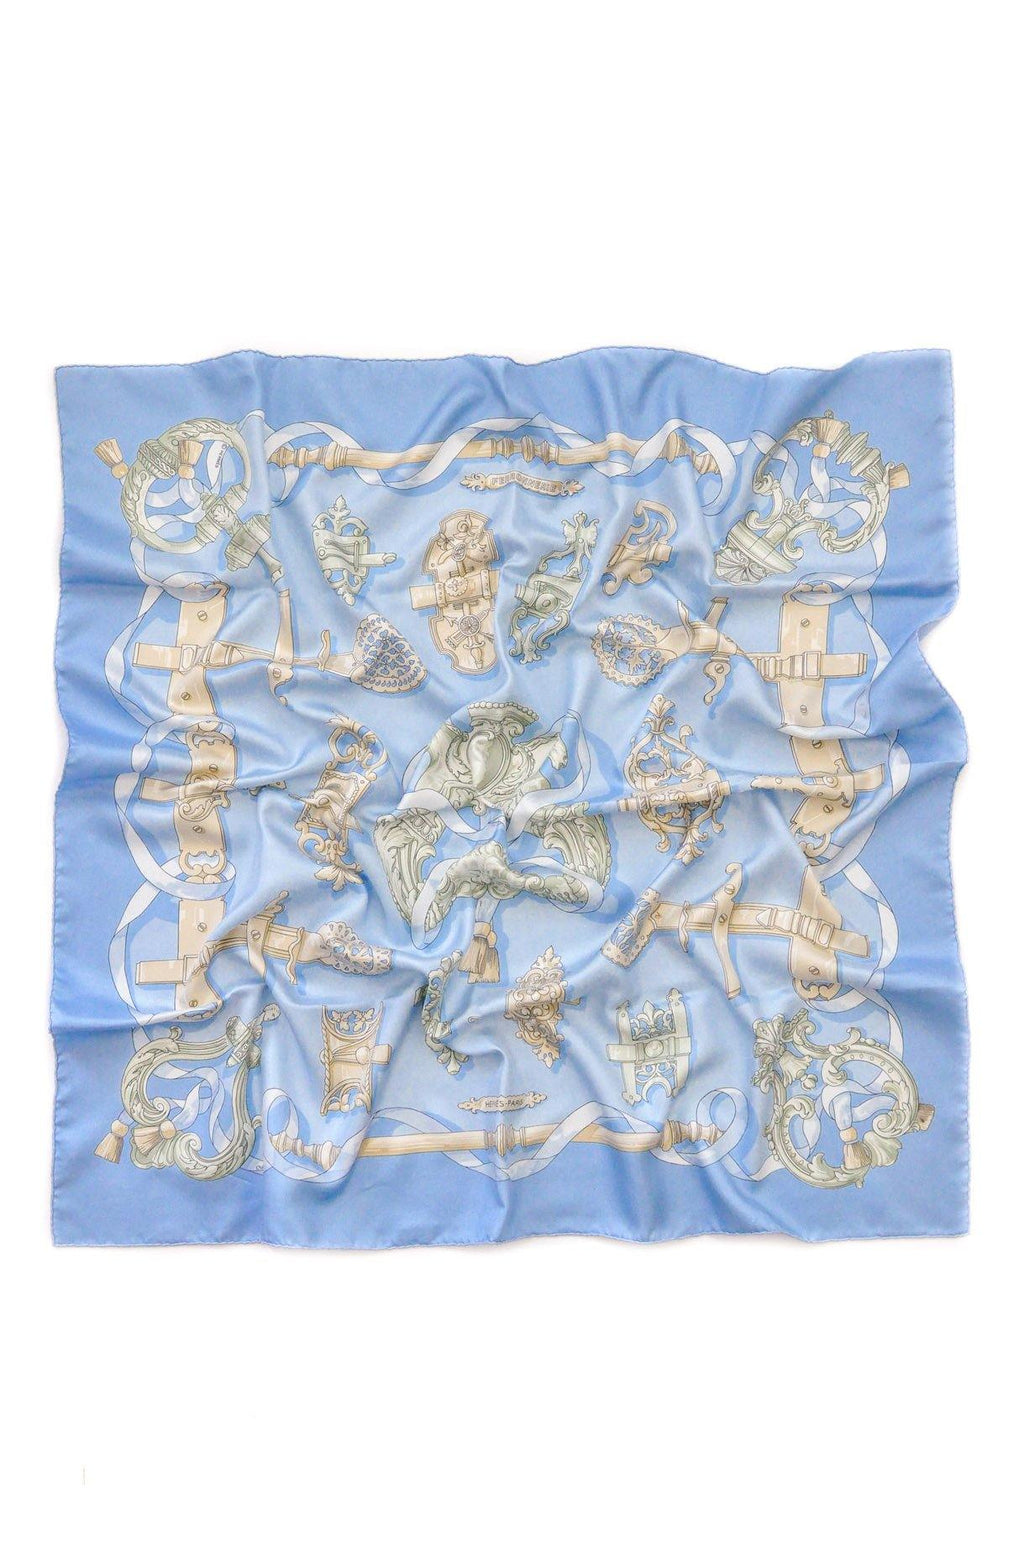 Hermès Light Blue Ferronnerie Scarf